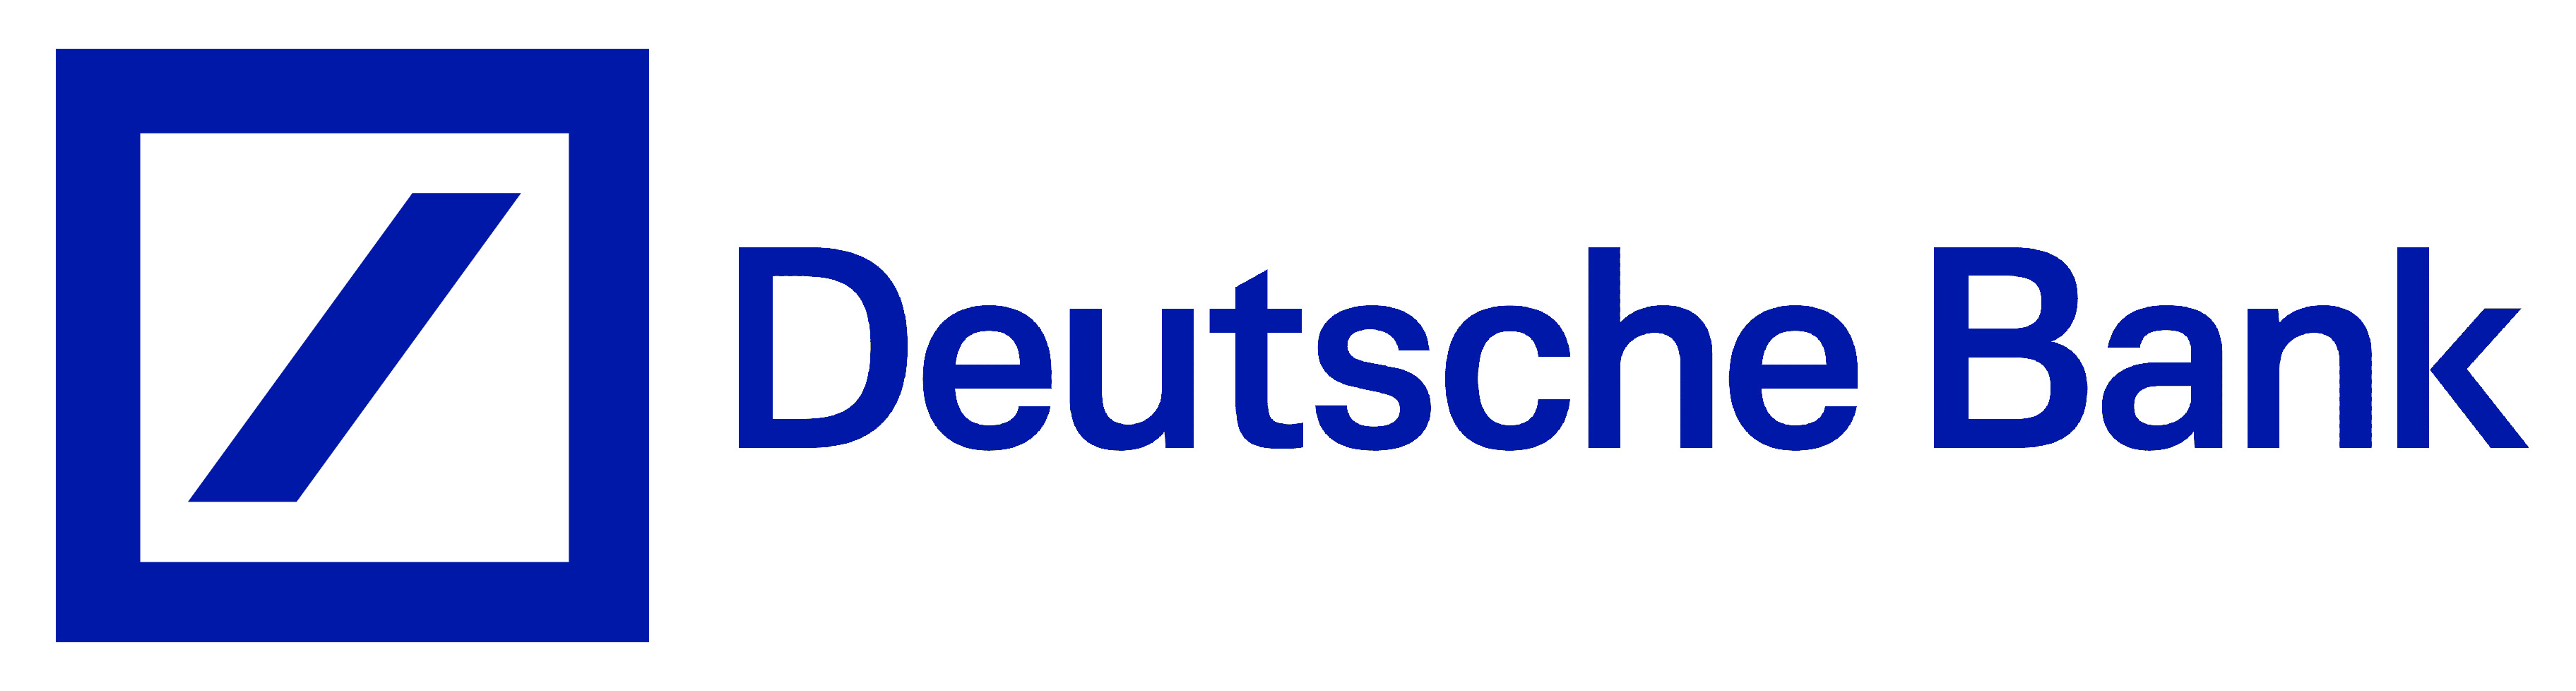 Minority, Women and Service-Disabled Veteran Owned Broker Dealers Help to Underwrite Deutsche Bank's $USD 750 mln Bond